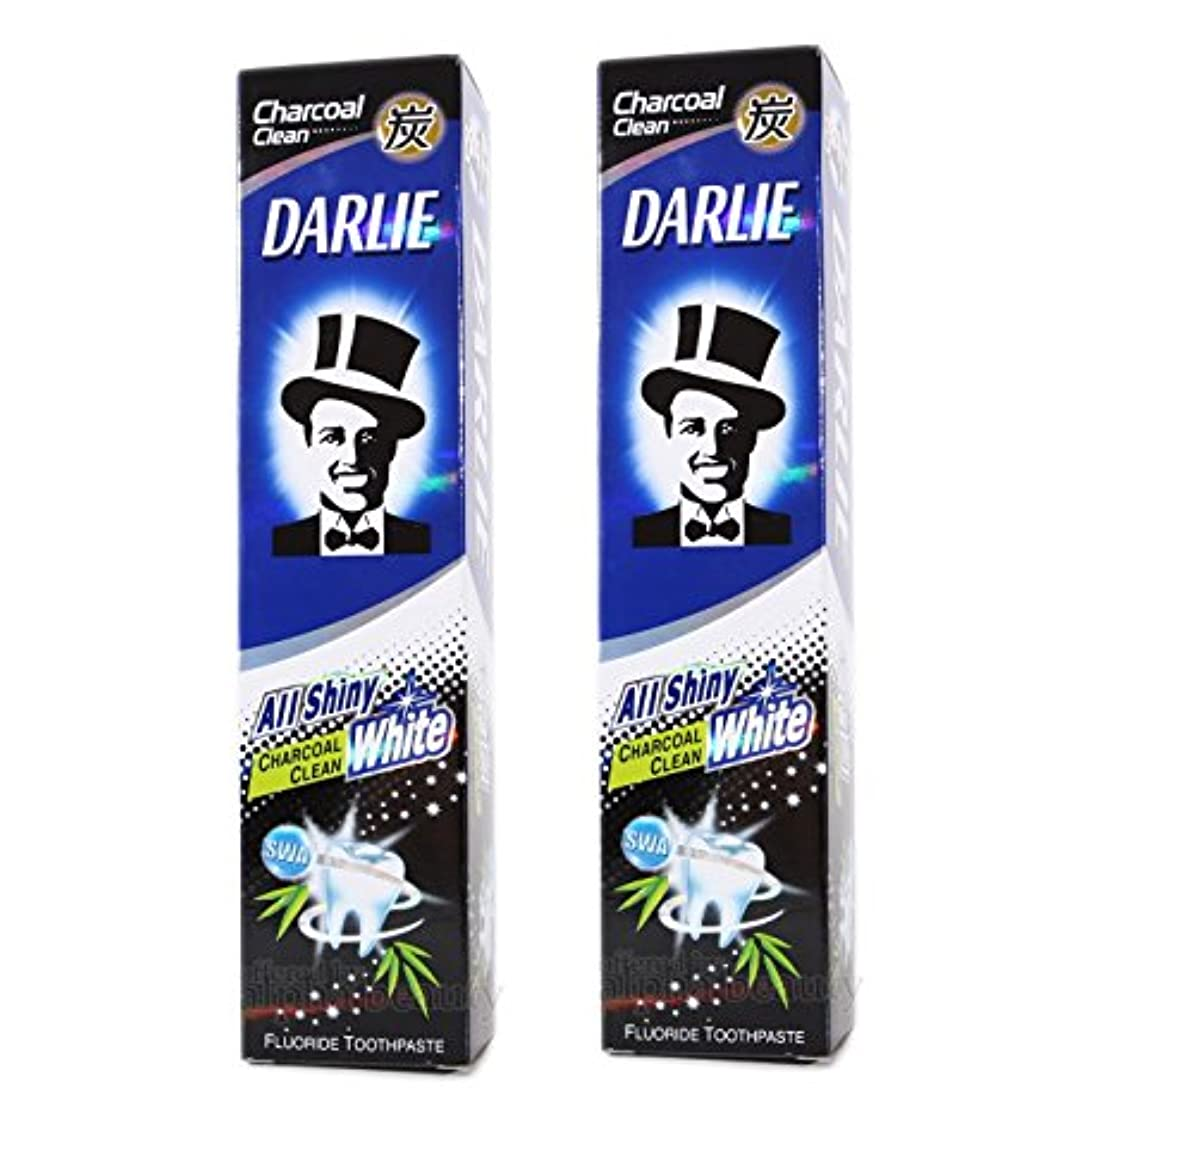 全体警報差し迫った2 packs of Darlie Charcoal All Shiny Whitening Toothpaste by Darlie